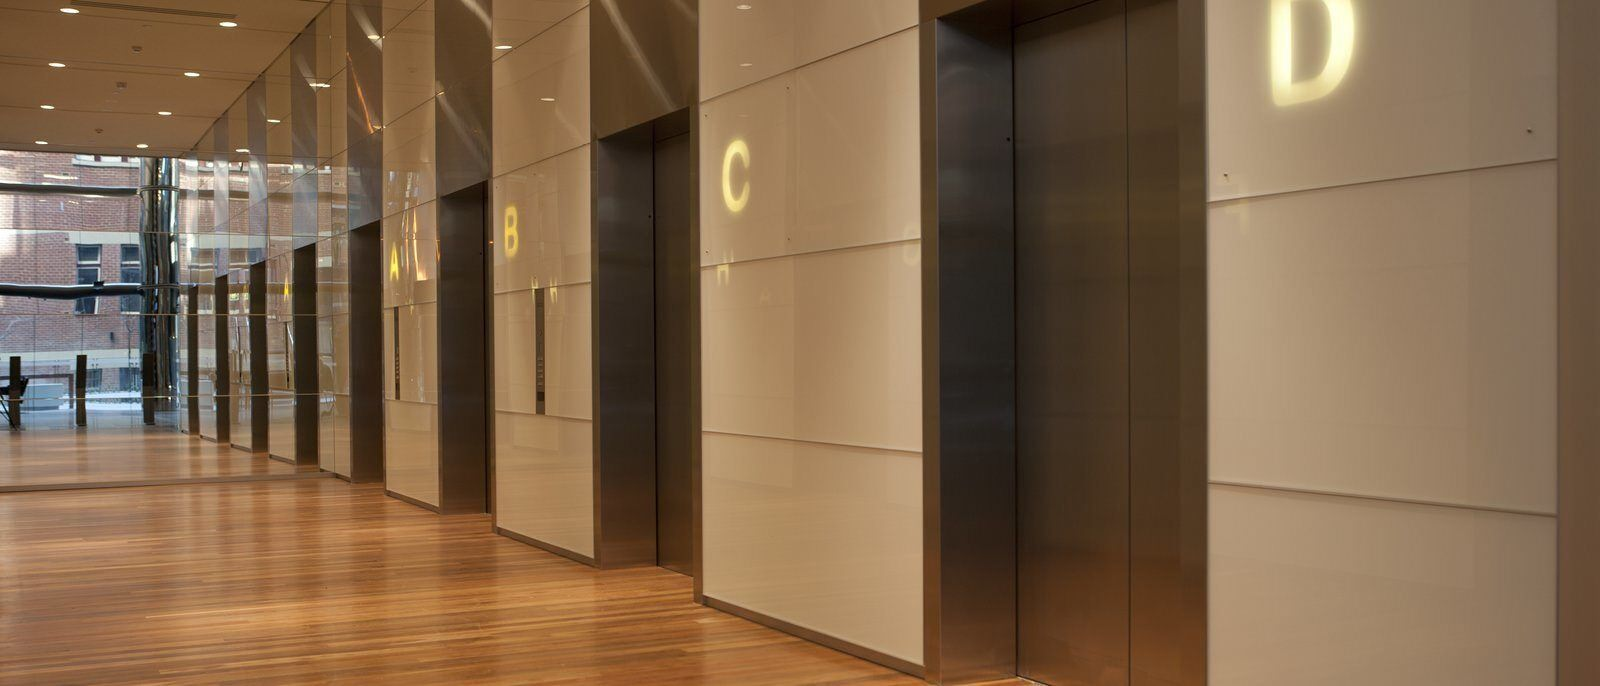 Elevators in a hallway with wooden floors labeled A, B, C, and D.